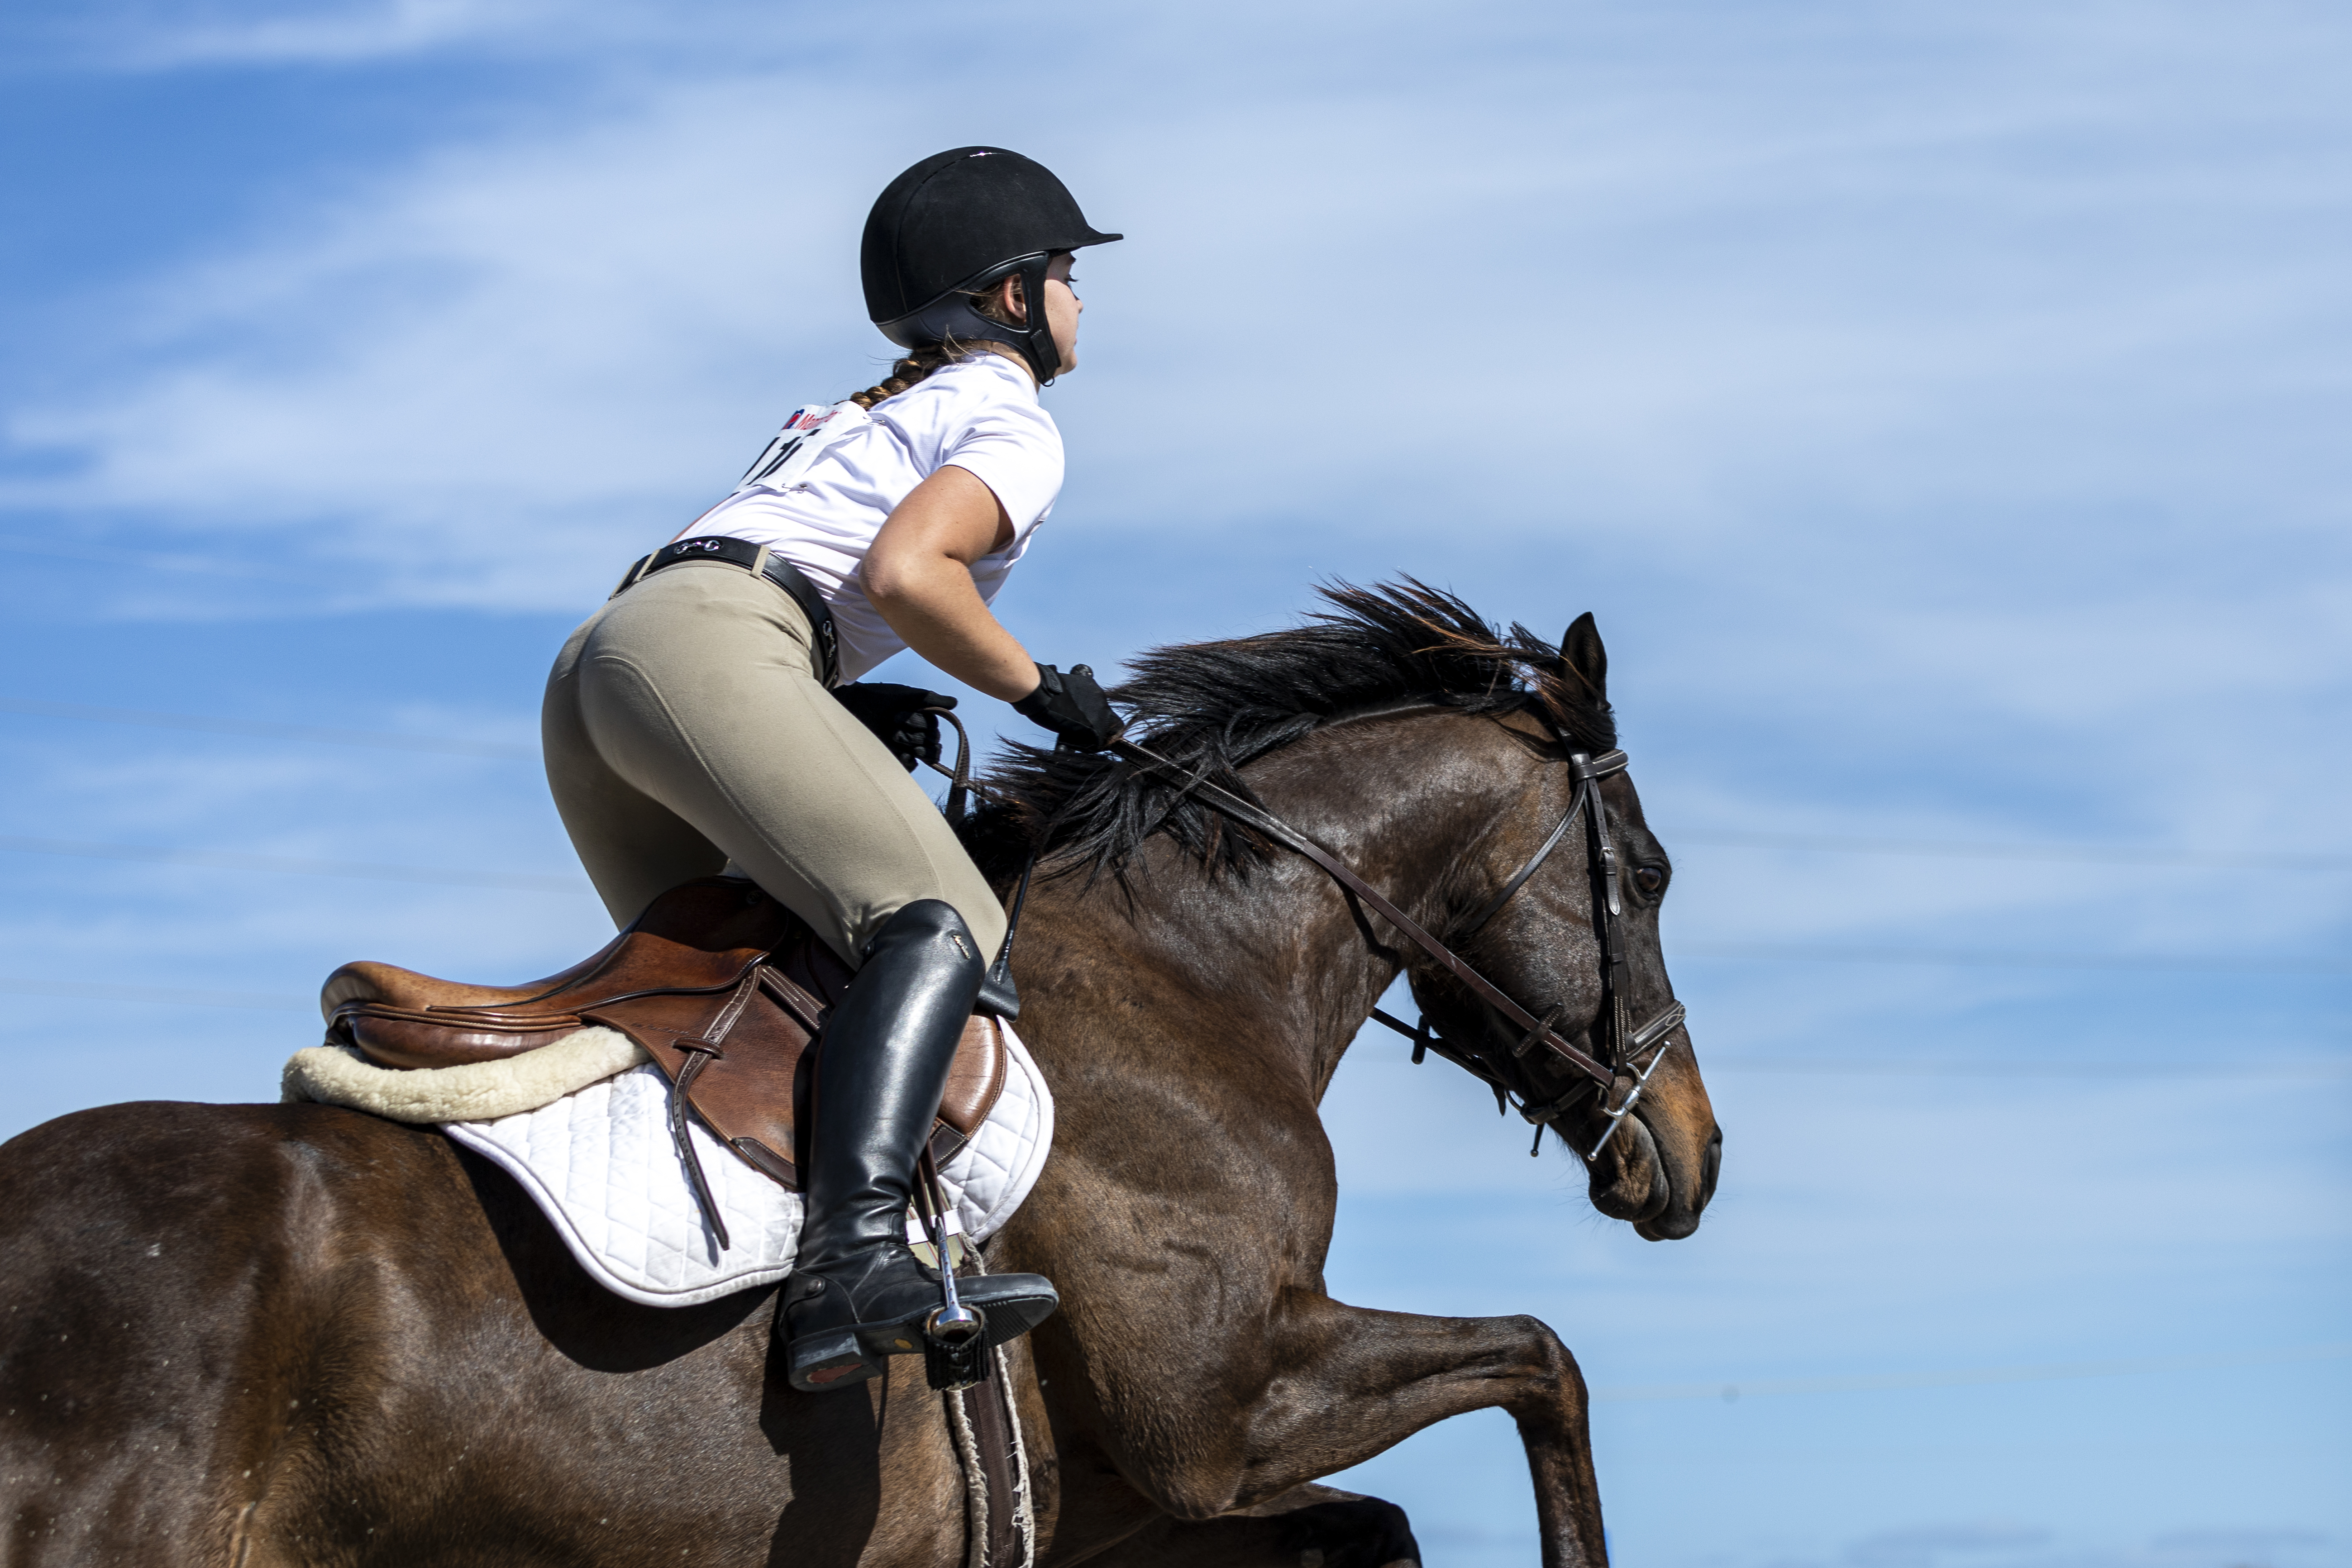 Brevard Equestrian Center participant in jump position on her horse during an equestrian show in 2021.